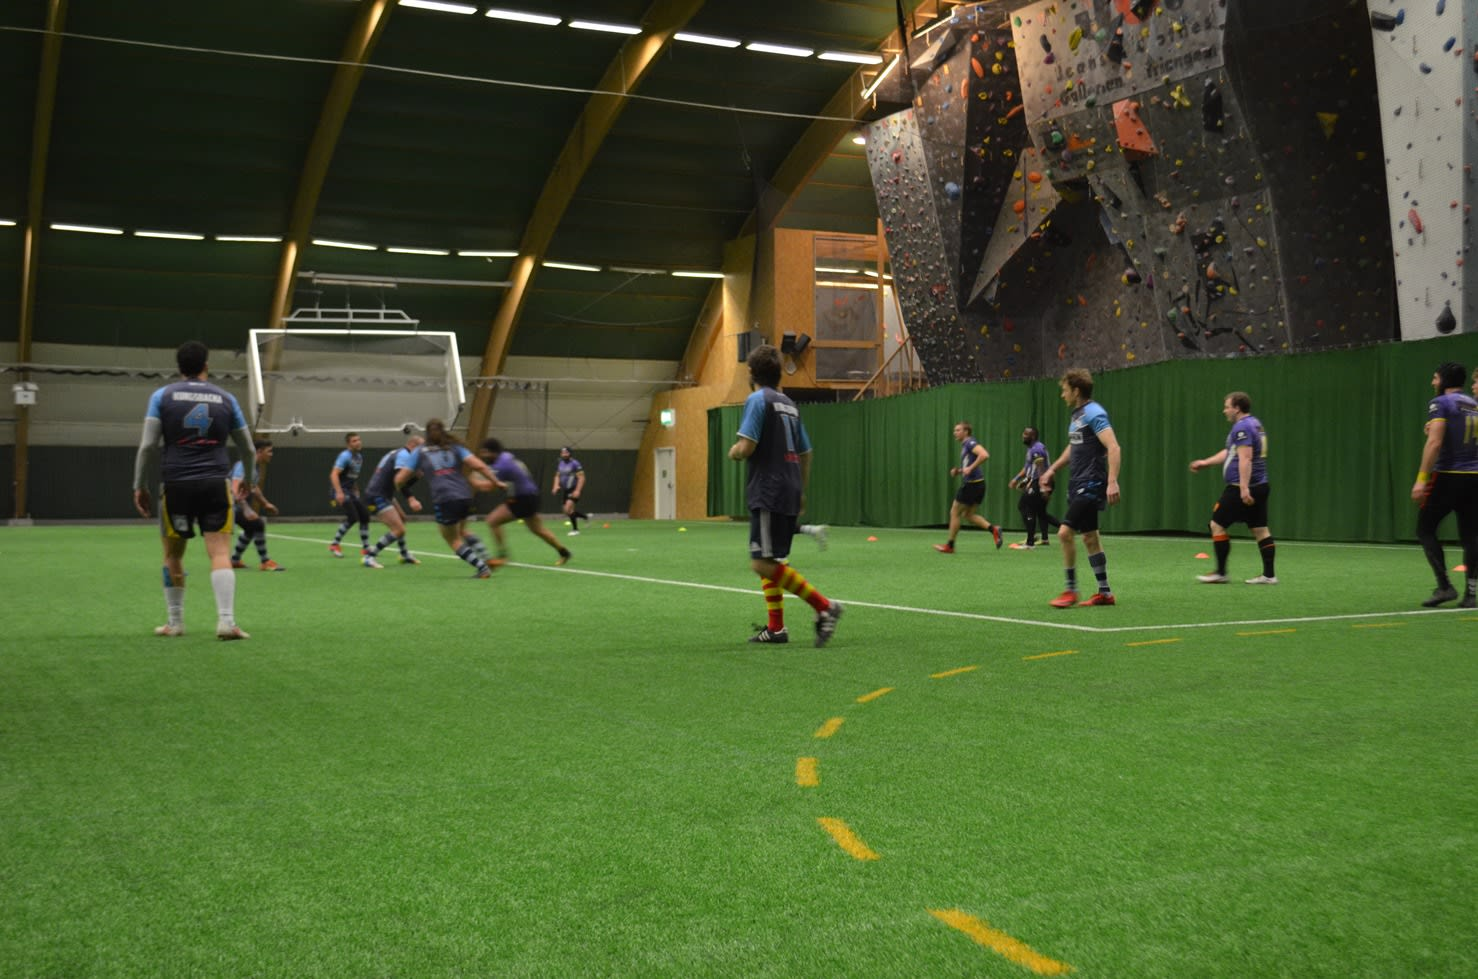 Action shot from the Skane Rugby League 9's held in Malmo in February 2020